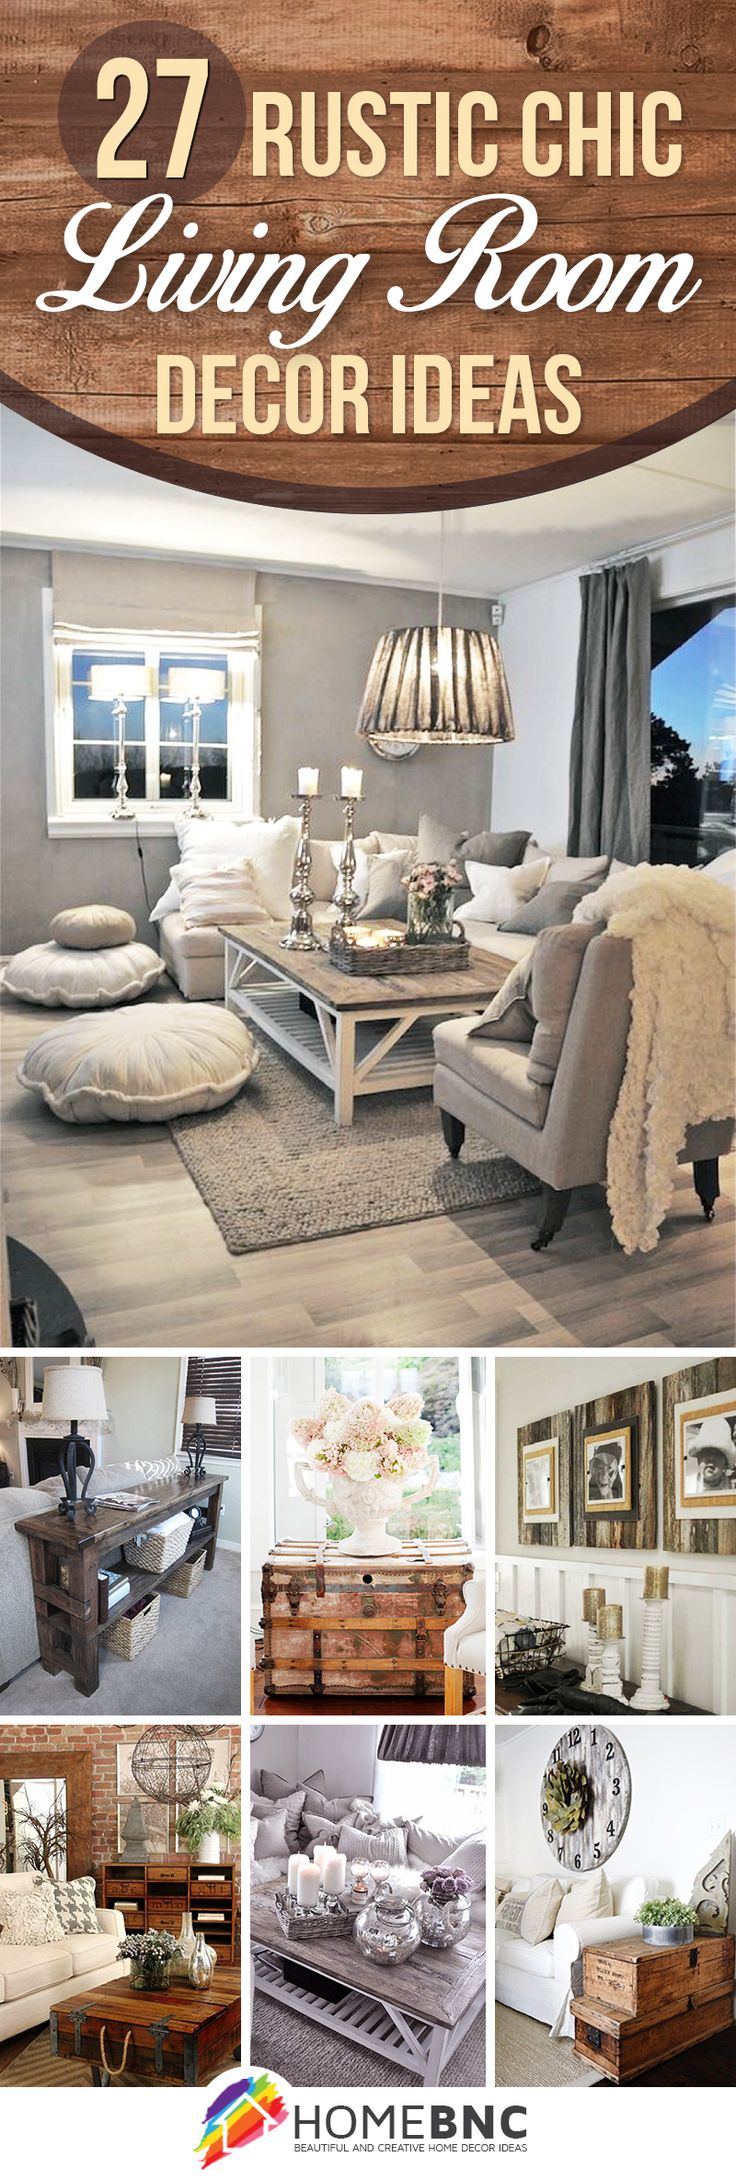 D co salon rustic chic living room ideas listspirit for Magazine living room ideas